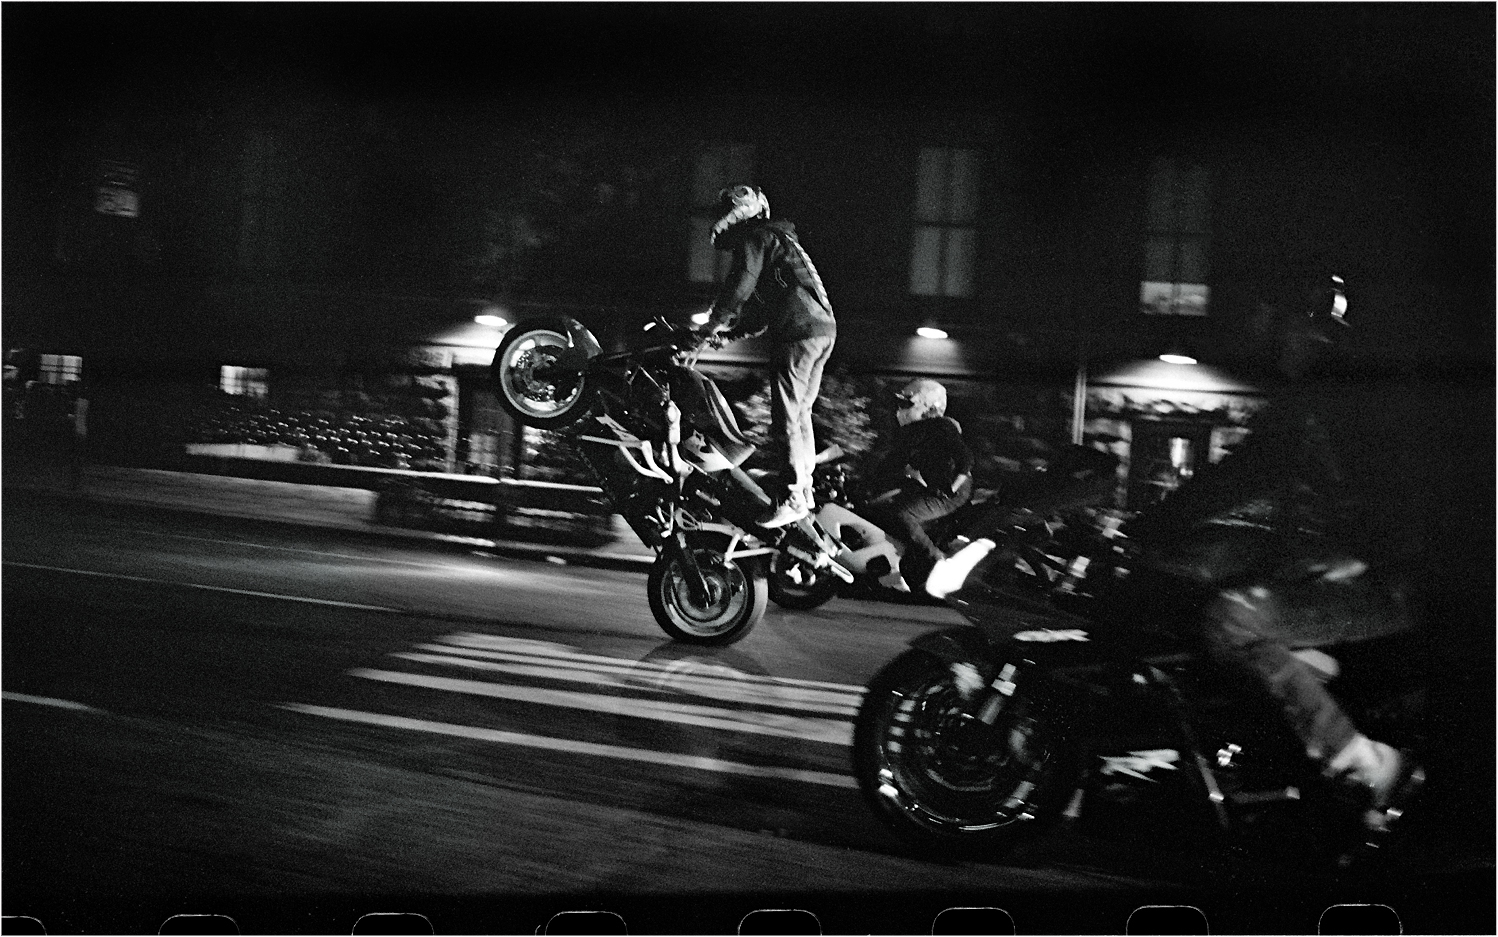 Signs And Quotes Wallpapers Motorcycle Wheelie 2013 Copy Black And White Street